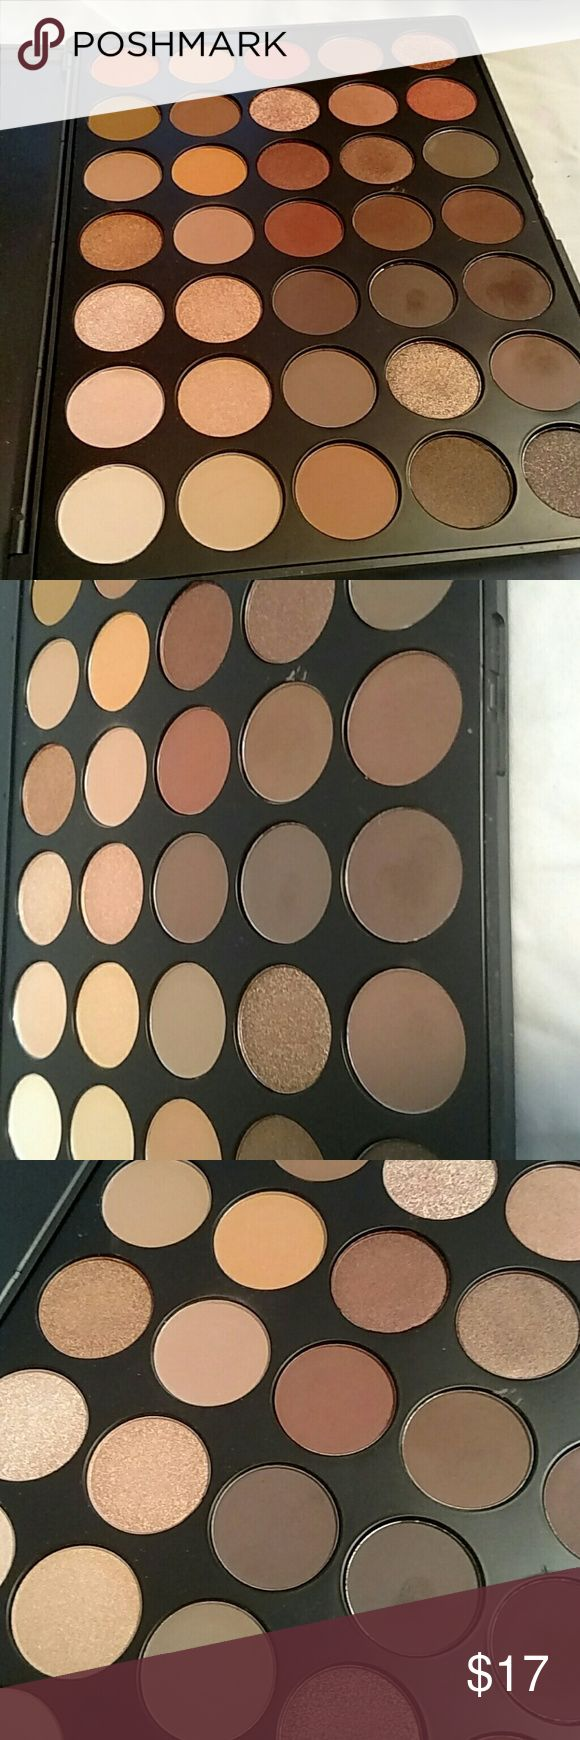 Morphe 350 palette Morphes infamous 350.  I swatched a few colors but it's in really great shape and looks almost brand new minus a few shades. Will take great care in shipping.  Morphe website shipping is crazy expensive so my price is pretty firm as I think this is a good deal!  I will absolutely take the time to make sure this item is shipped as securely as I got it. Thank you! Xo morphe Makeup Eyeshadow